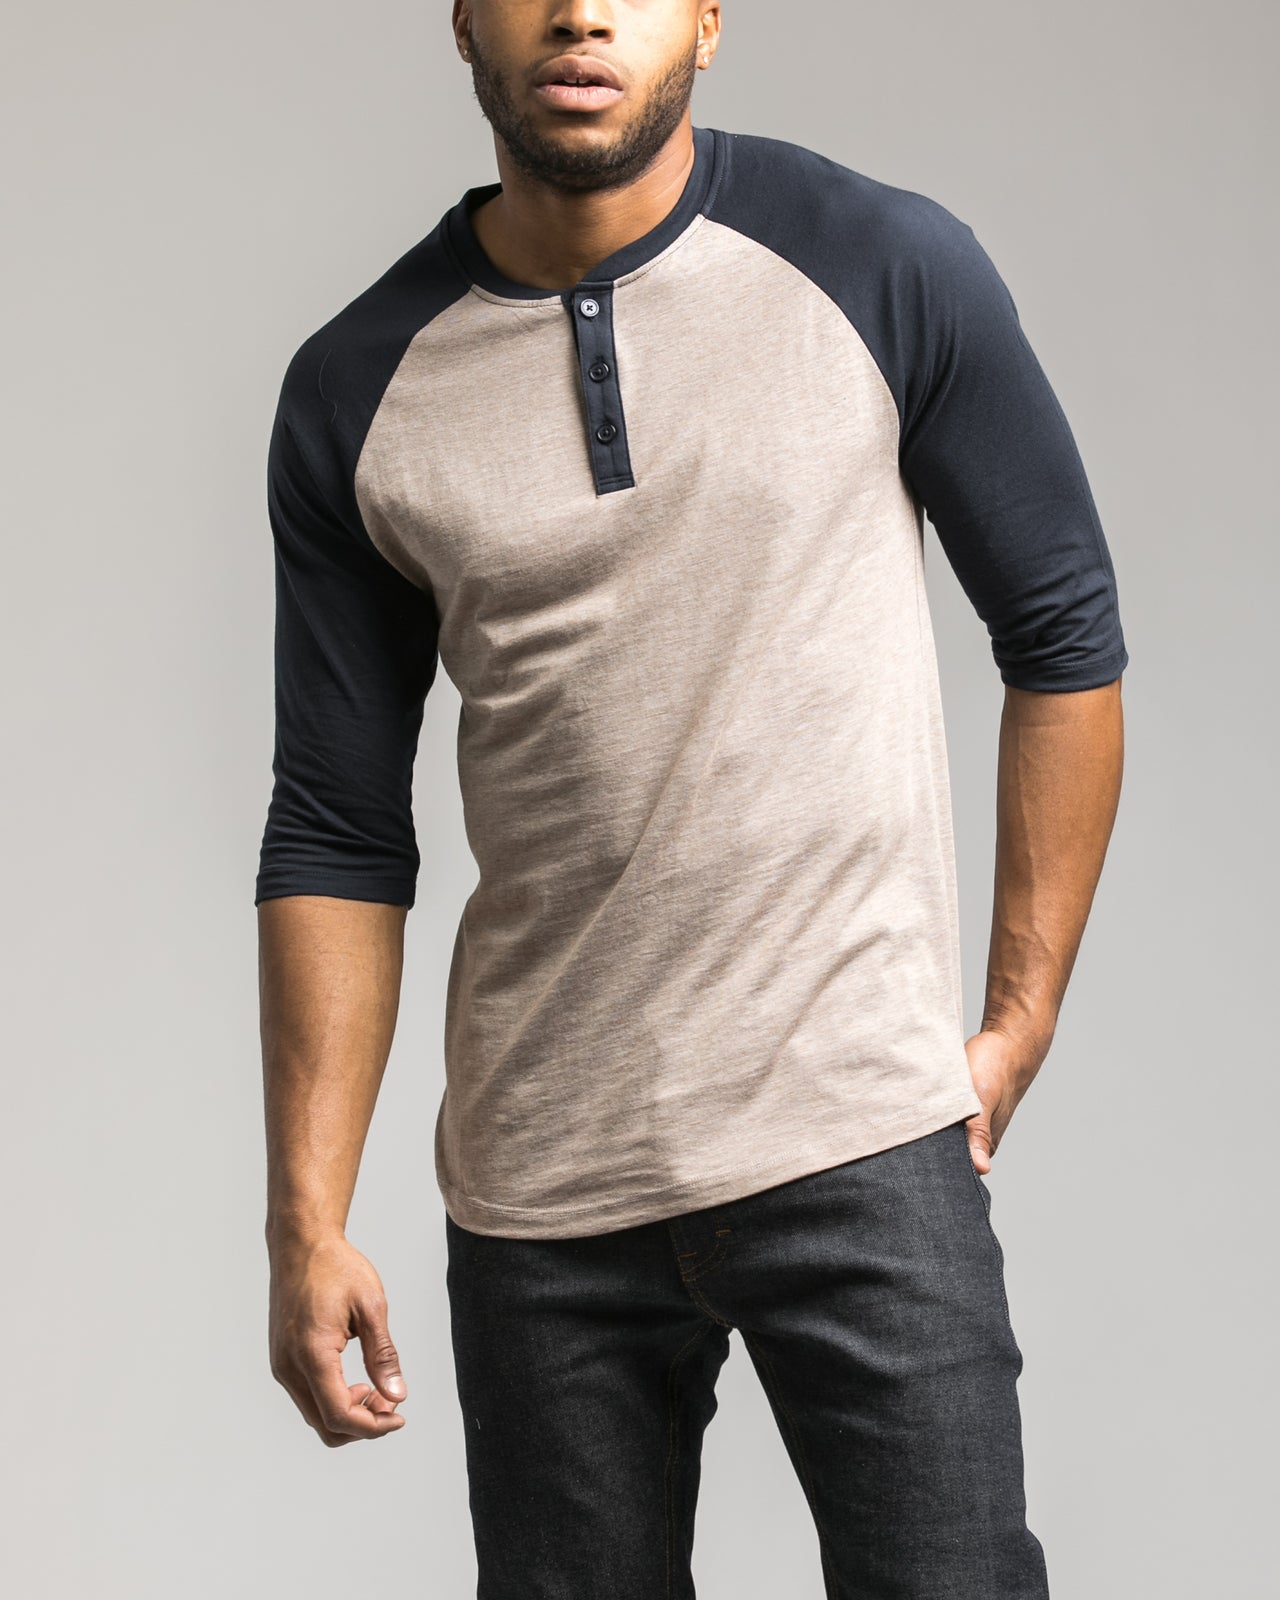 Contrast Heather Henley Tee - Color: Toasted Coconut | Beige